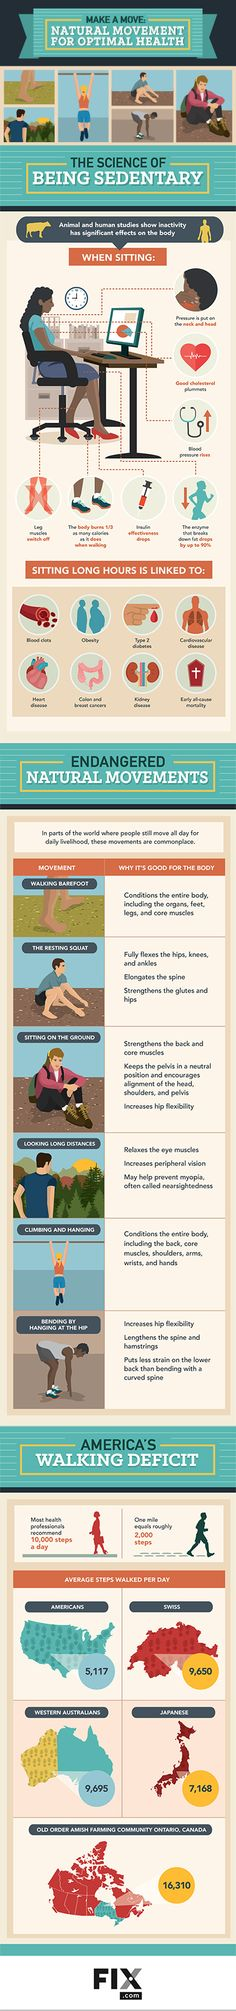 Natural Movement for Optimal Health Natural Movement For Optimal Health Infographic shows why hikers are healthy! Natural Movement for Optimal Health Natural Movement For Optimal Health Infographic shows why hikers are healthy! Health And Nutrition, Health And Wellness, Health Care, Health Fitness, Fitness Infographic, Health Infographics, Chiropractic Therapy, Body Of Evidence, Health Symbol